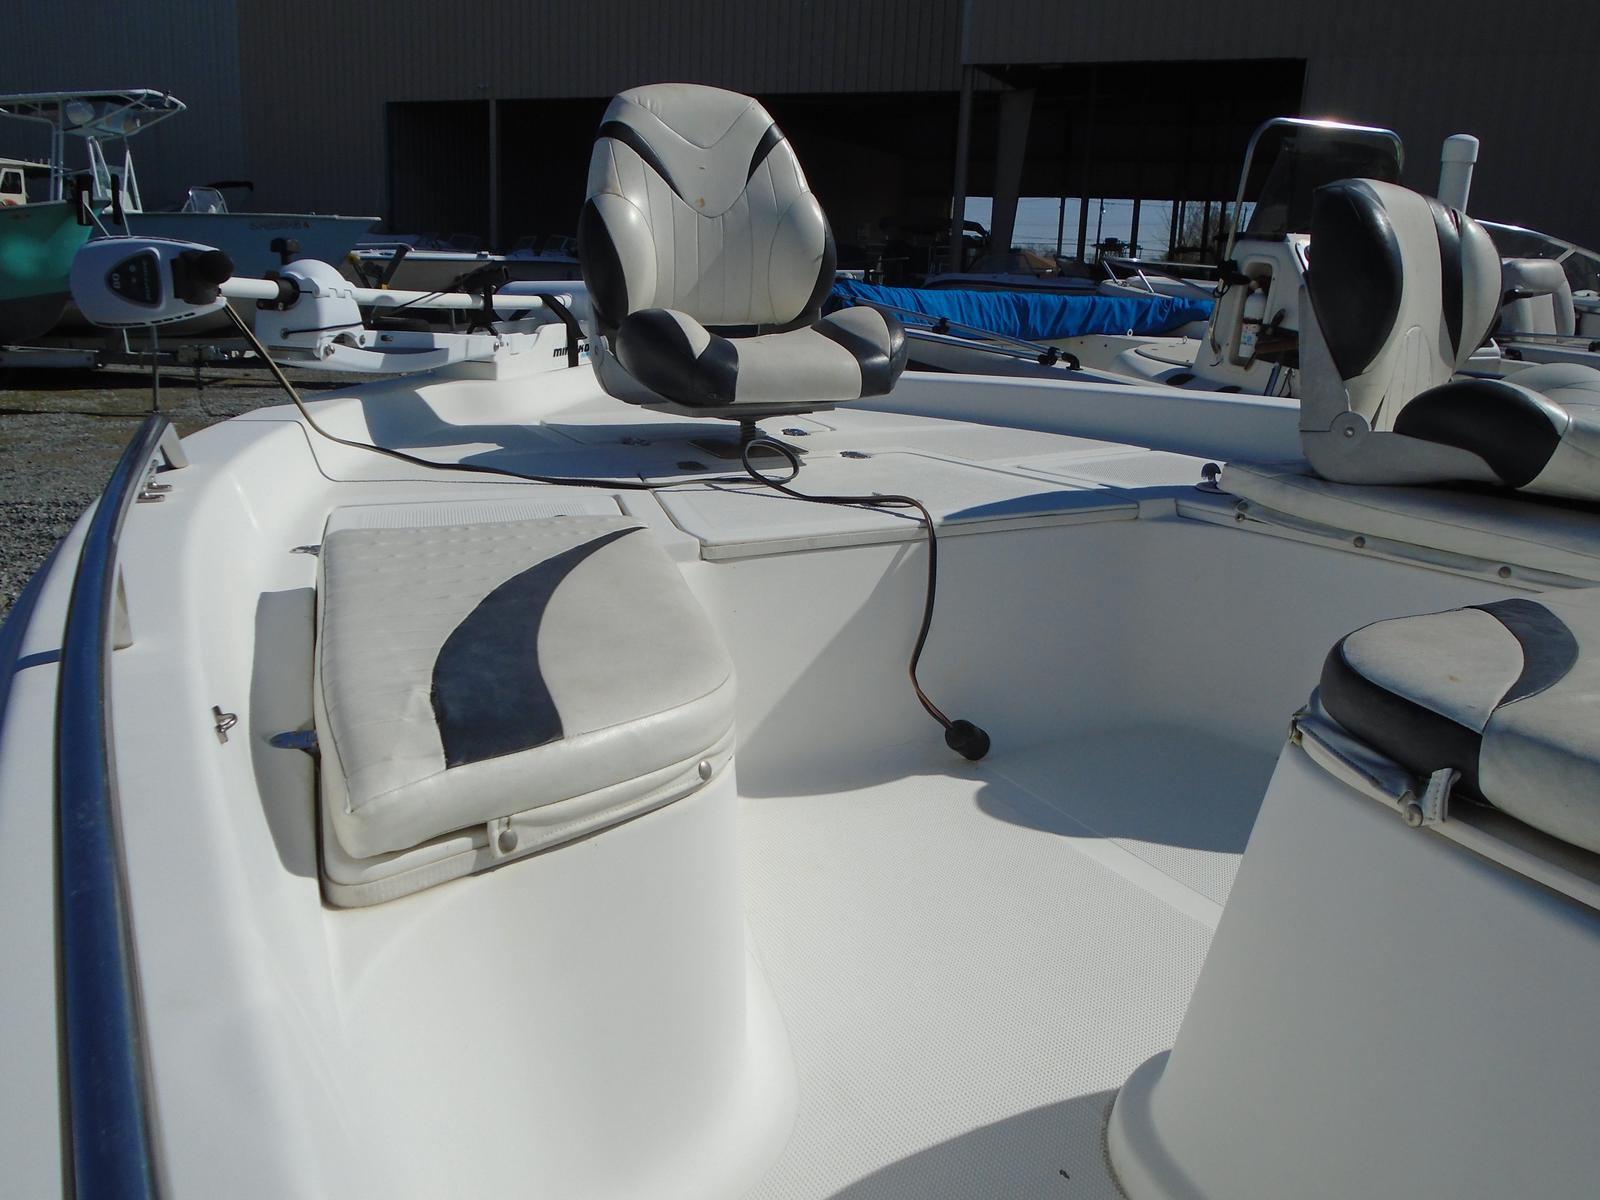 2006 Bay Stealth boat for sale, model of the boat is 2030 & Image # 2 of 12